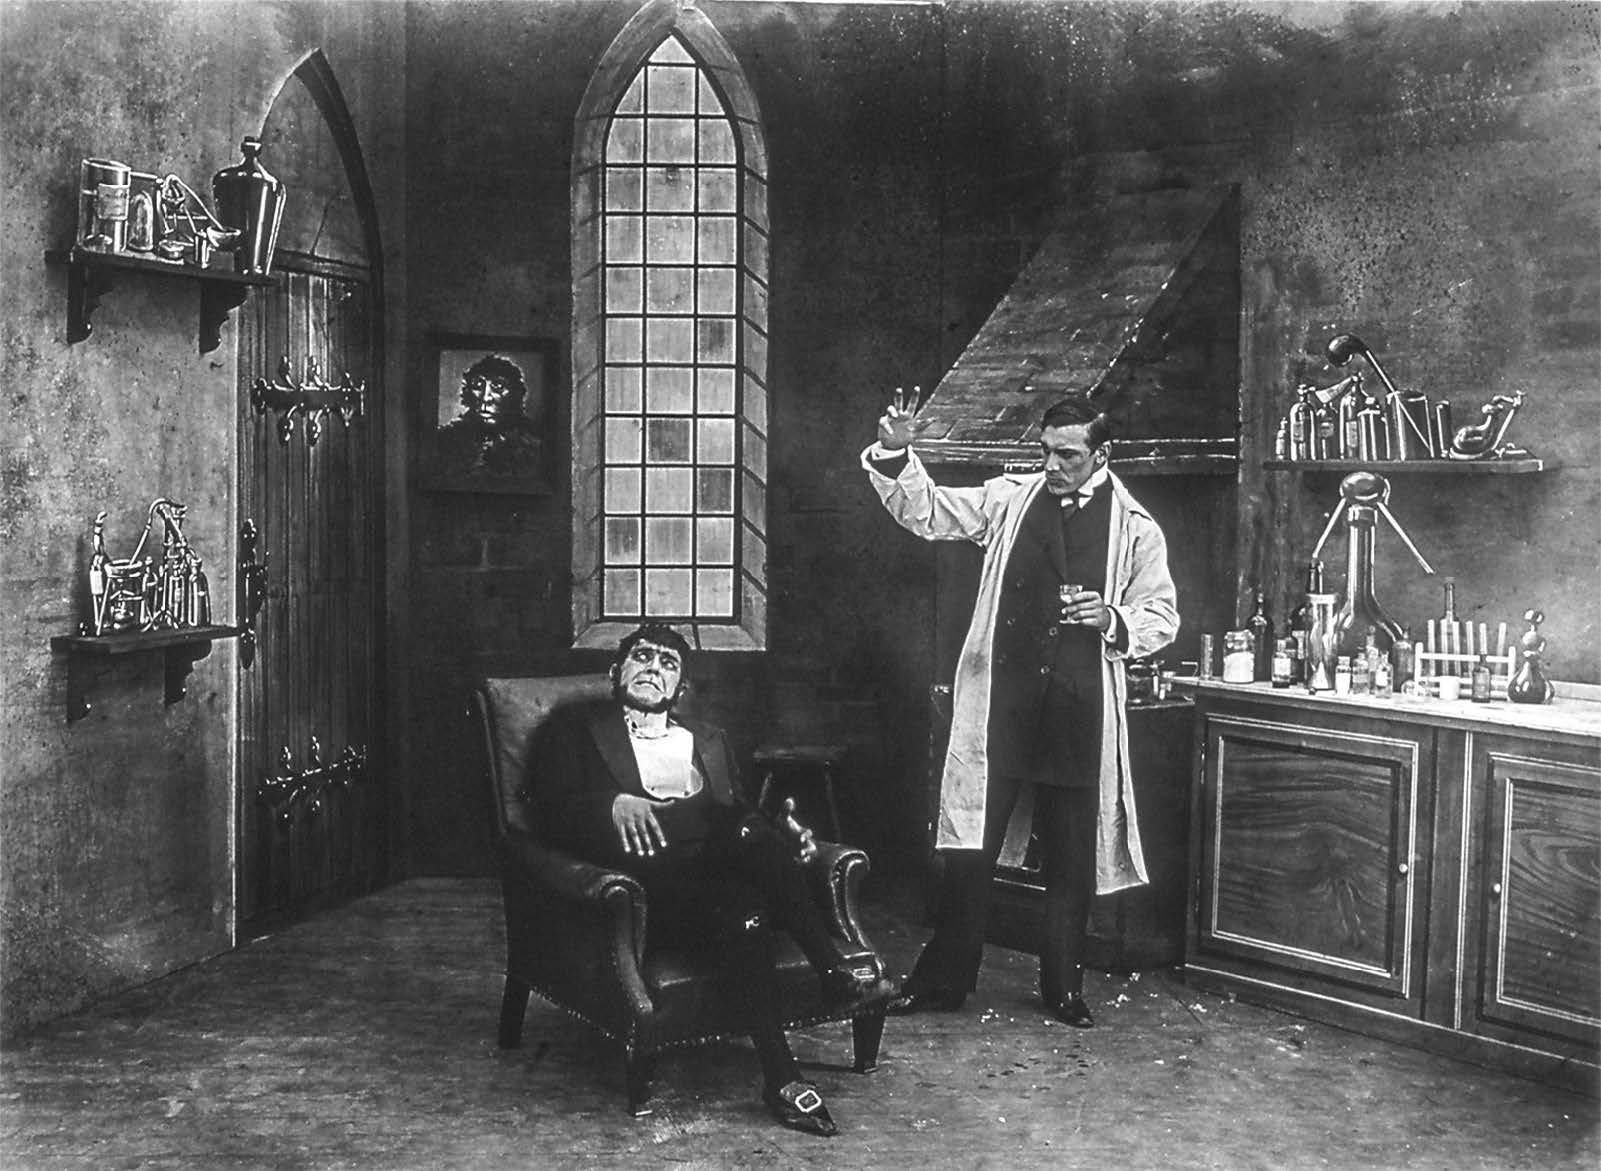 Double-exposed publicity still of Alwin Neuss as the title characters in Dr. Jekyll and Mr. Hyde; or, a Strange Case (Great Northern, 1910). (Courtesy of Robert J. Kiss)